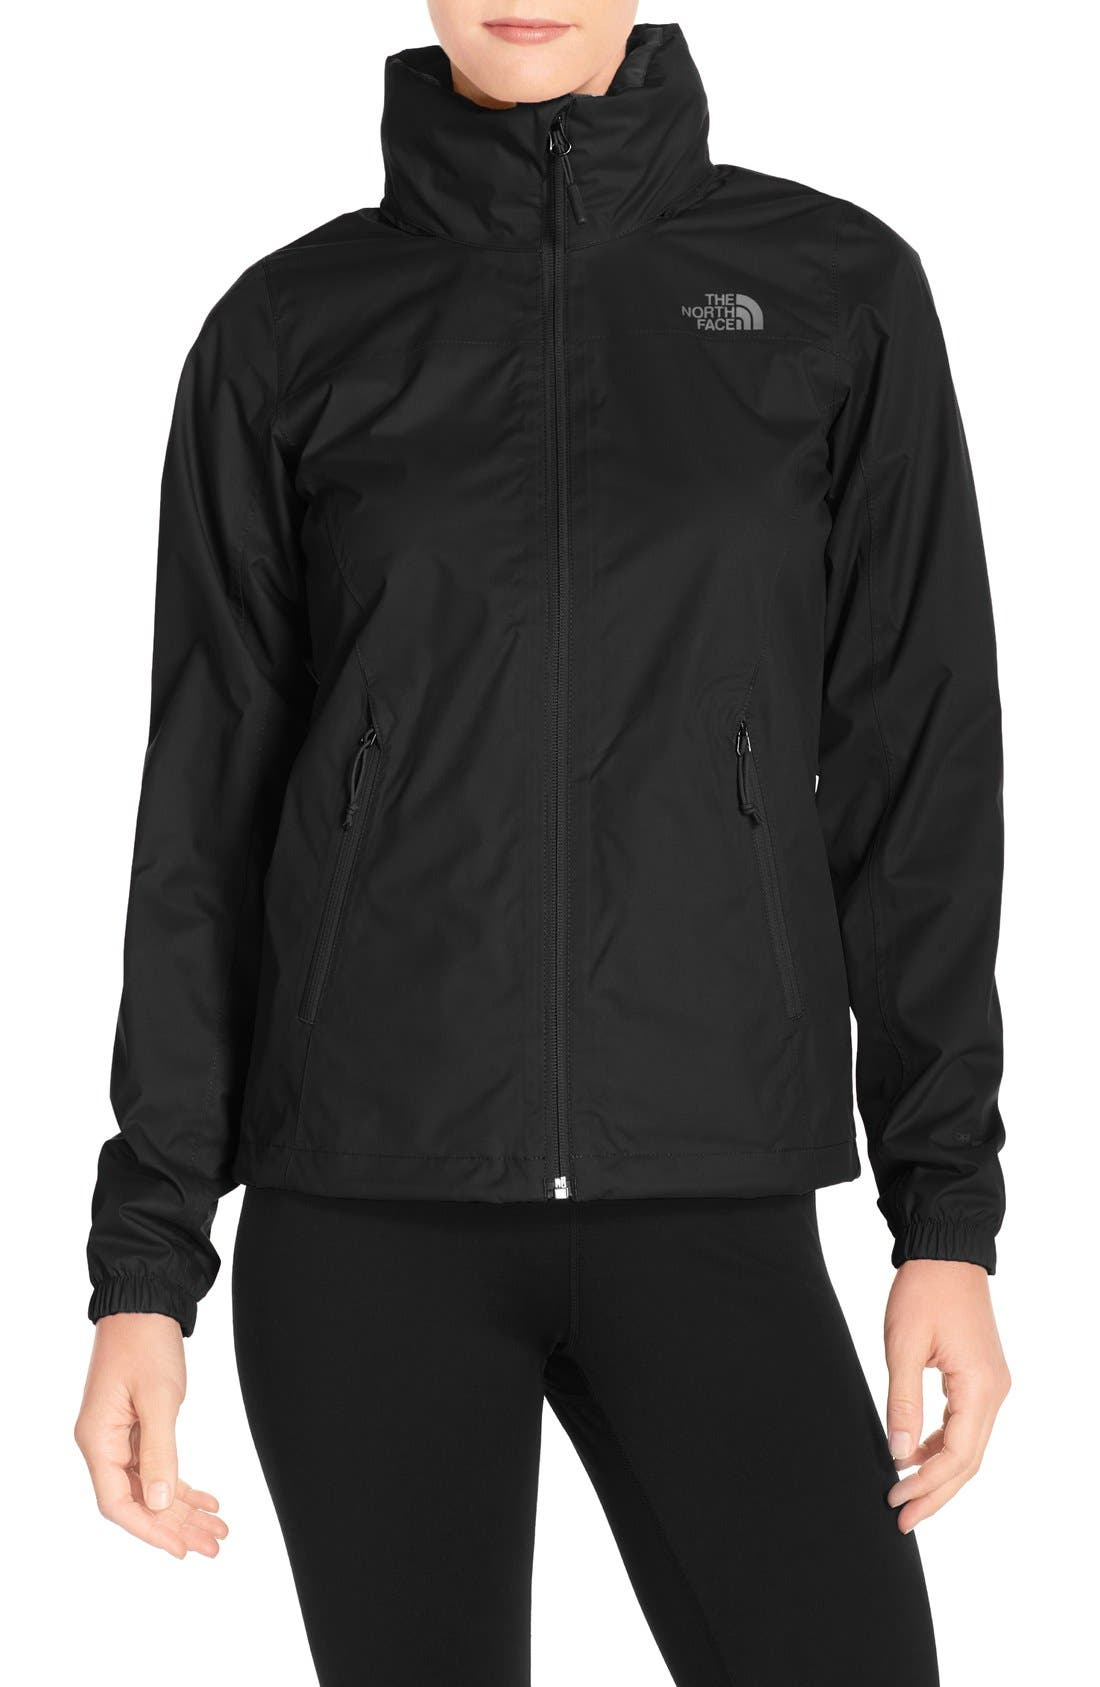 Main Image - The North Face 'Resolve Plus' Waterproof Jacket